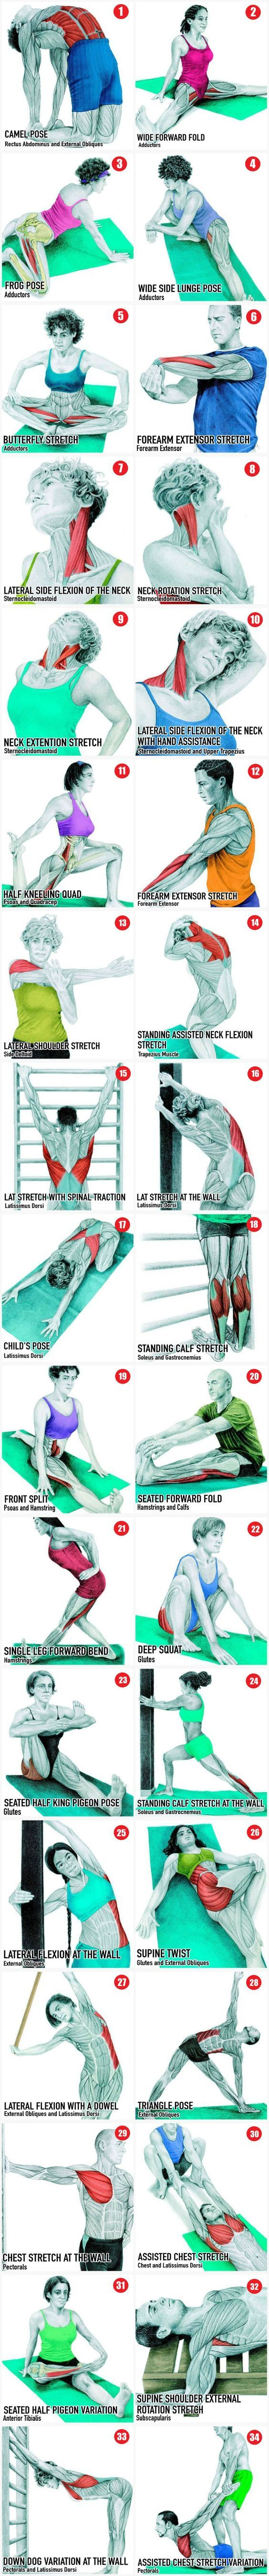 34 Pictures To See Which Muscle You're Stretching